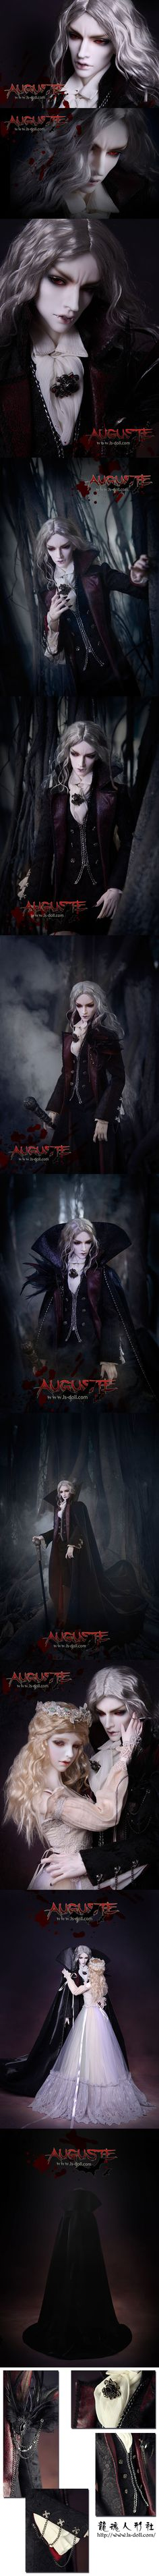 BJD Auguste( Vampire version) Boy 80cm 50 Limited Ball-jointed doll_80cm doll_LOONG SOUL_DOLL_Ball Jointed Dolls (BJD) company-Legenddoll